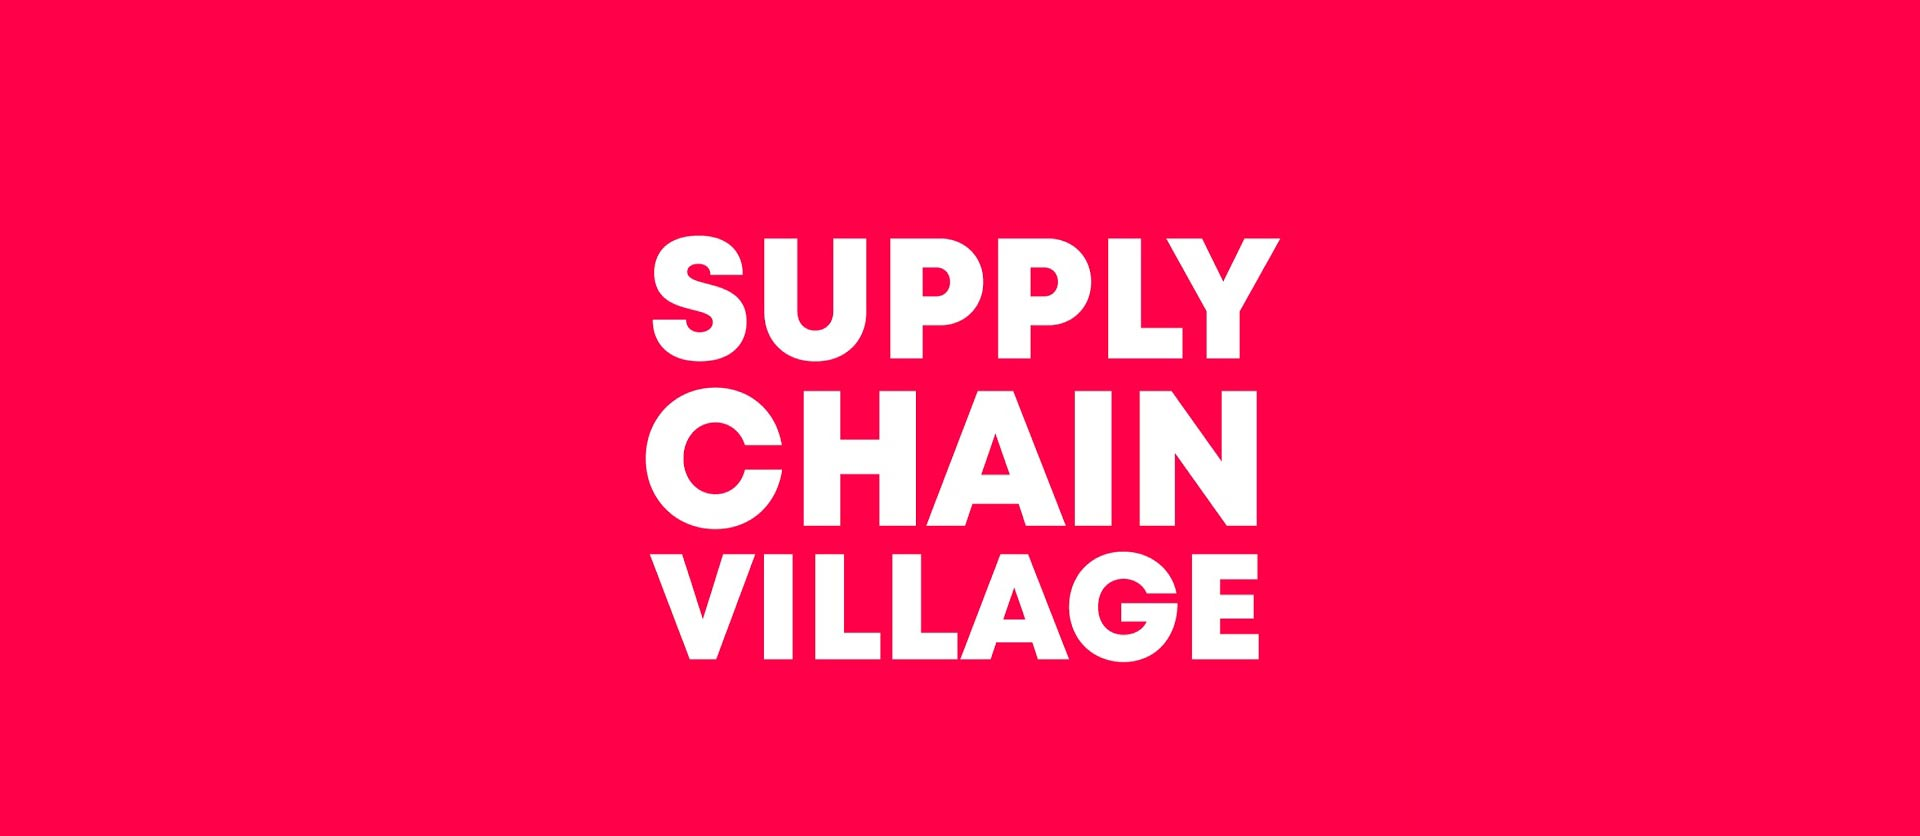 supplychain-village.com